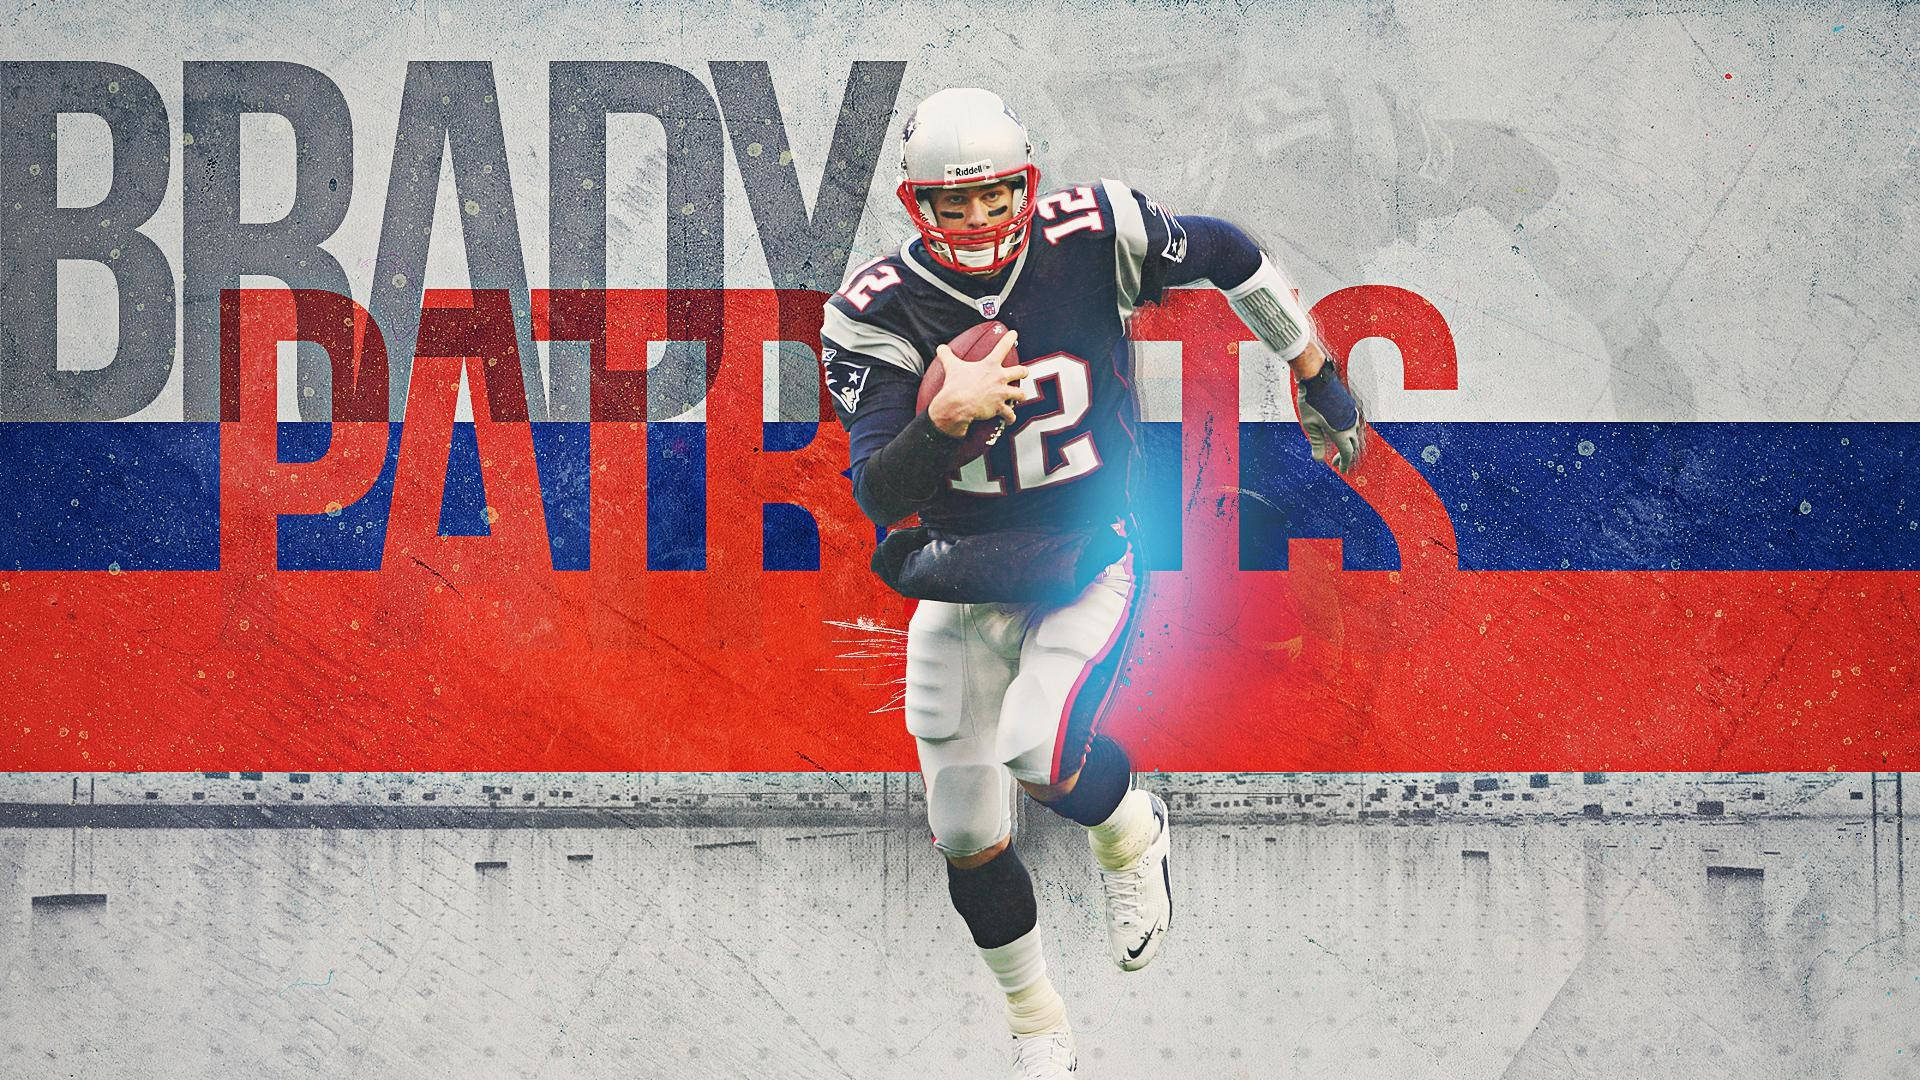 1920x1080 2017 New England Patriots Wallpapers - PC |iPhone| Android